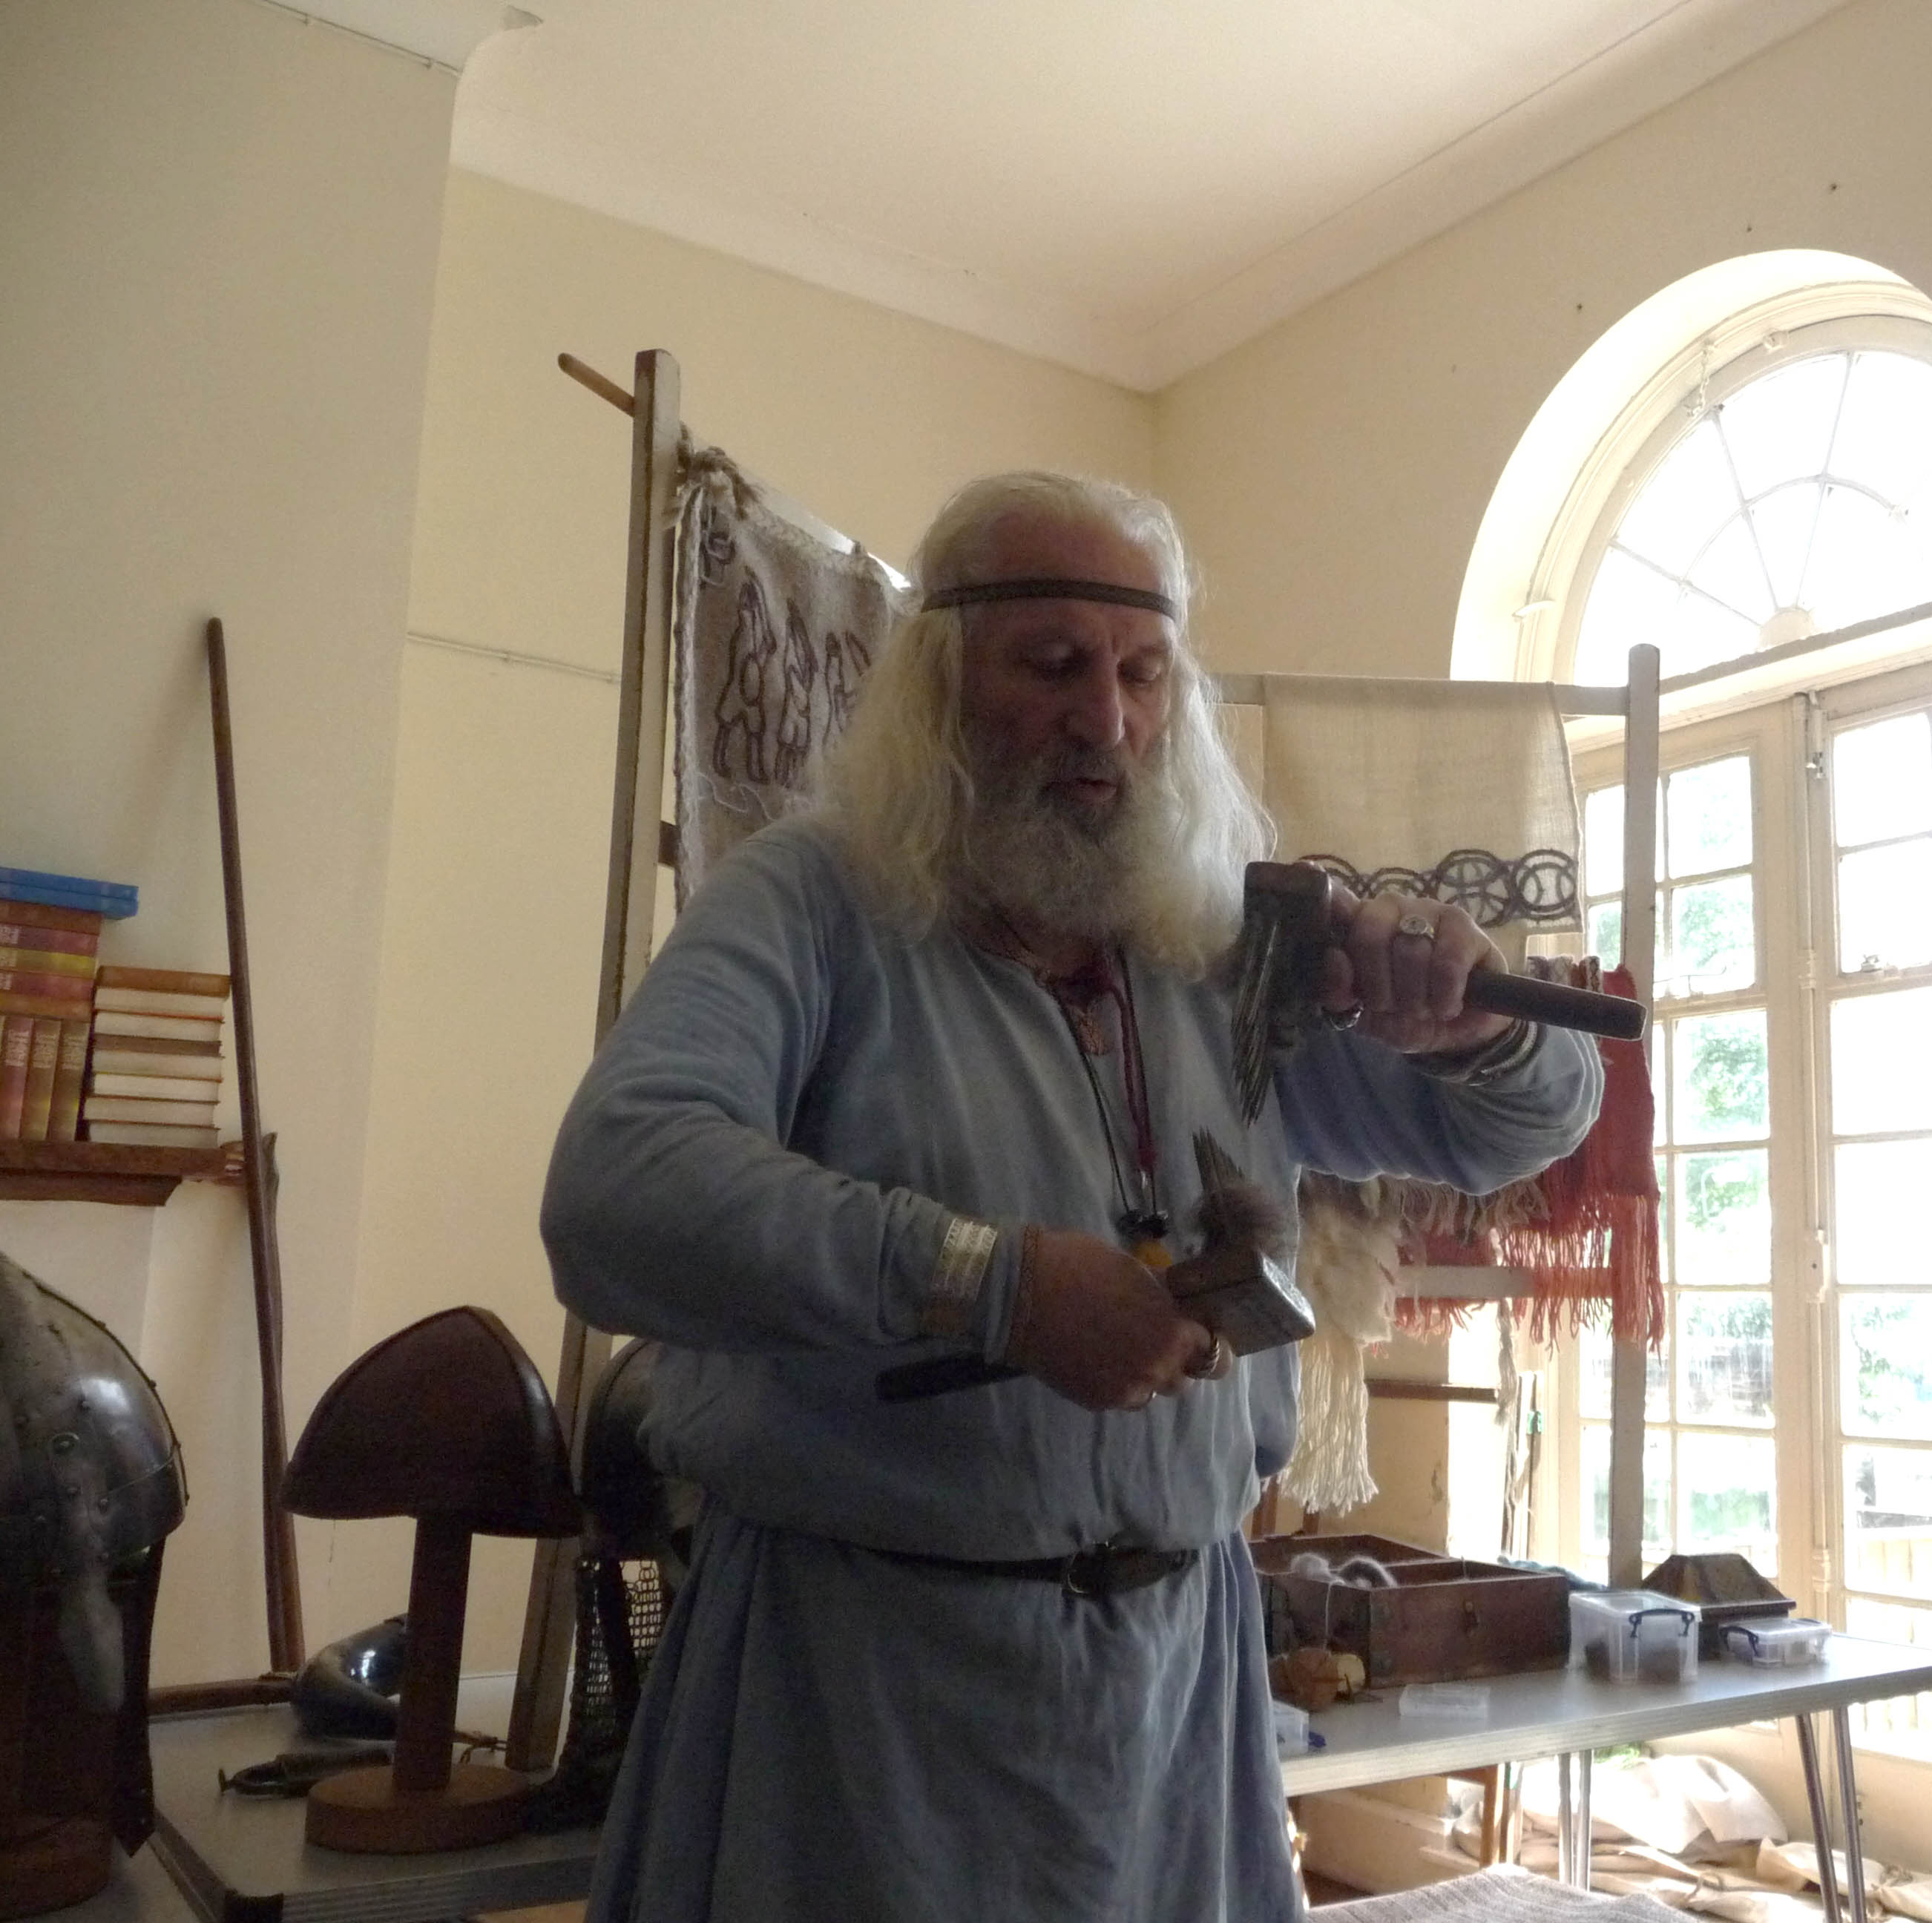 Snorri the Viking is demonstrating how the wool would be combed before spinning